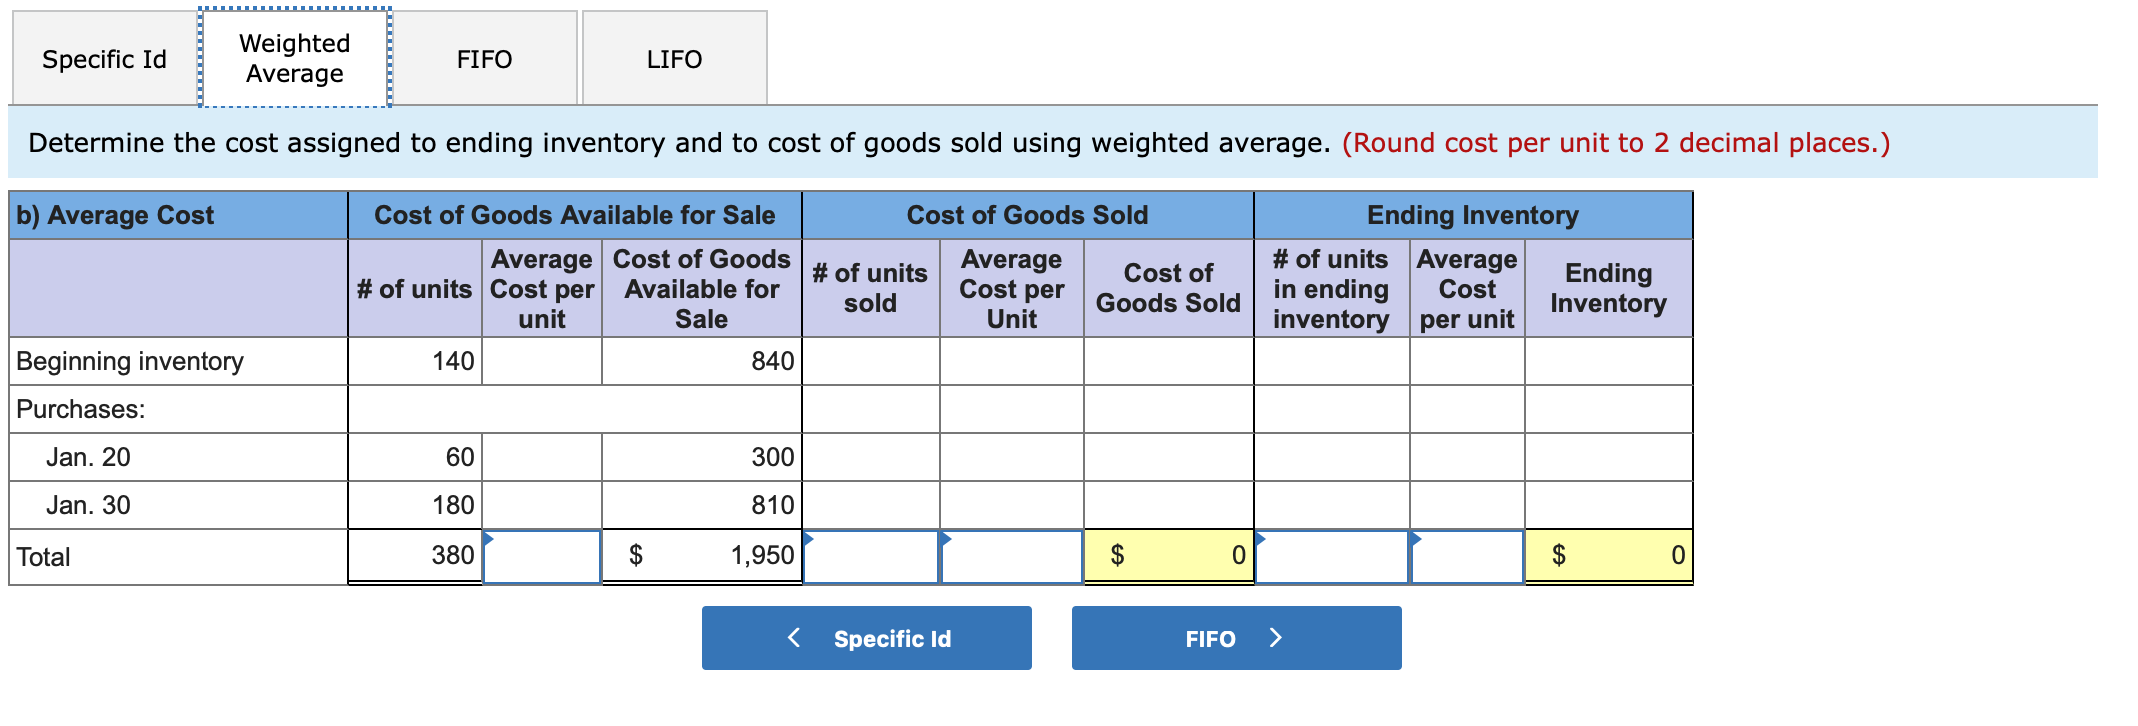 Weighted Average Specific Id FIFO LIFO Determine the cost assigned to ending inventory and to cost of goods sold using weighted average. (Round cost per unit to 2 decimal places.) b) Average Cost Cost of Goods Available for Sale Cost of Goods Sold Ending Inventory Average Cost of Goods |# of units # of units Average in ending inventory per unit Average Cost per Unit Ending Inventory Cost of # of units Cost per unit Available for Cost sold Goods Sold Sale Beginning inventory 140 840 Purchases: Jan. 20 60 300 Jan. 30 180 810 $ $ $ Total 380 1,950 Specific Id FIFO EA